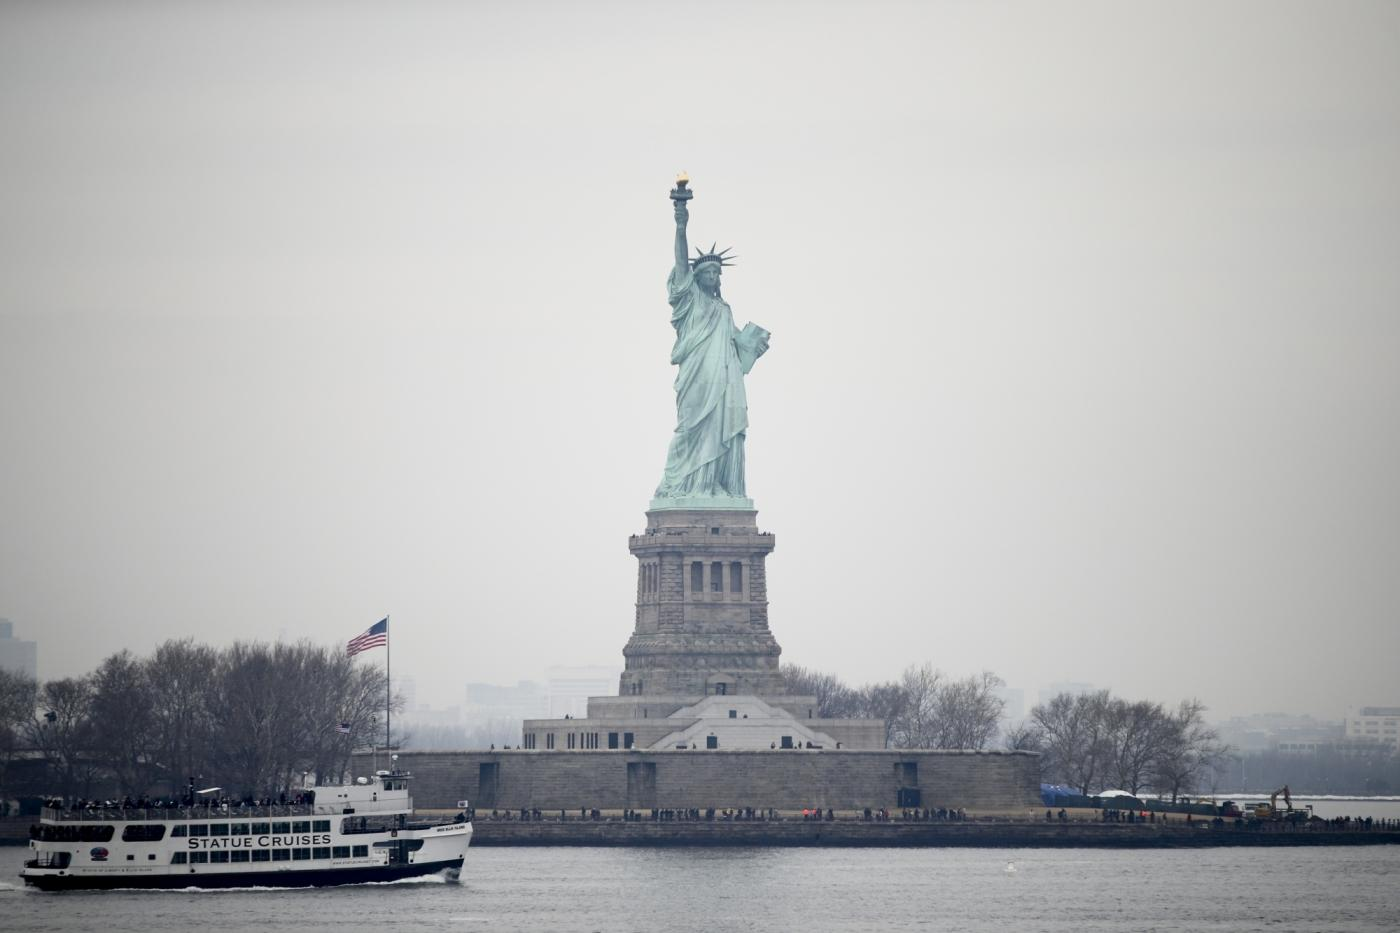 NEW YORK, Jan. 22, 2018 (Xinhua) -- Tourists visit the Statue of Liberty on Liberty Island in New York, the United States, Jan. 22, 2018. New York City's iconic landmark the Statue of Liberty reopened Monday at the expense of state funds following a brief closure as a result of the U.S. federal government shutdown. According to a news release published on New York State Governor Andrew Cuomo's website, the cost of keeping the Statue of Liberty National Monument and Ellis Island open is 65,000 U.S. dollars per day. (Xinhua/Wang Ying/IANS) by .